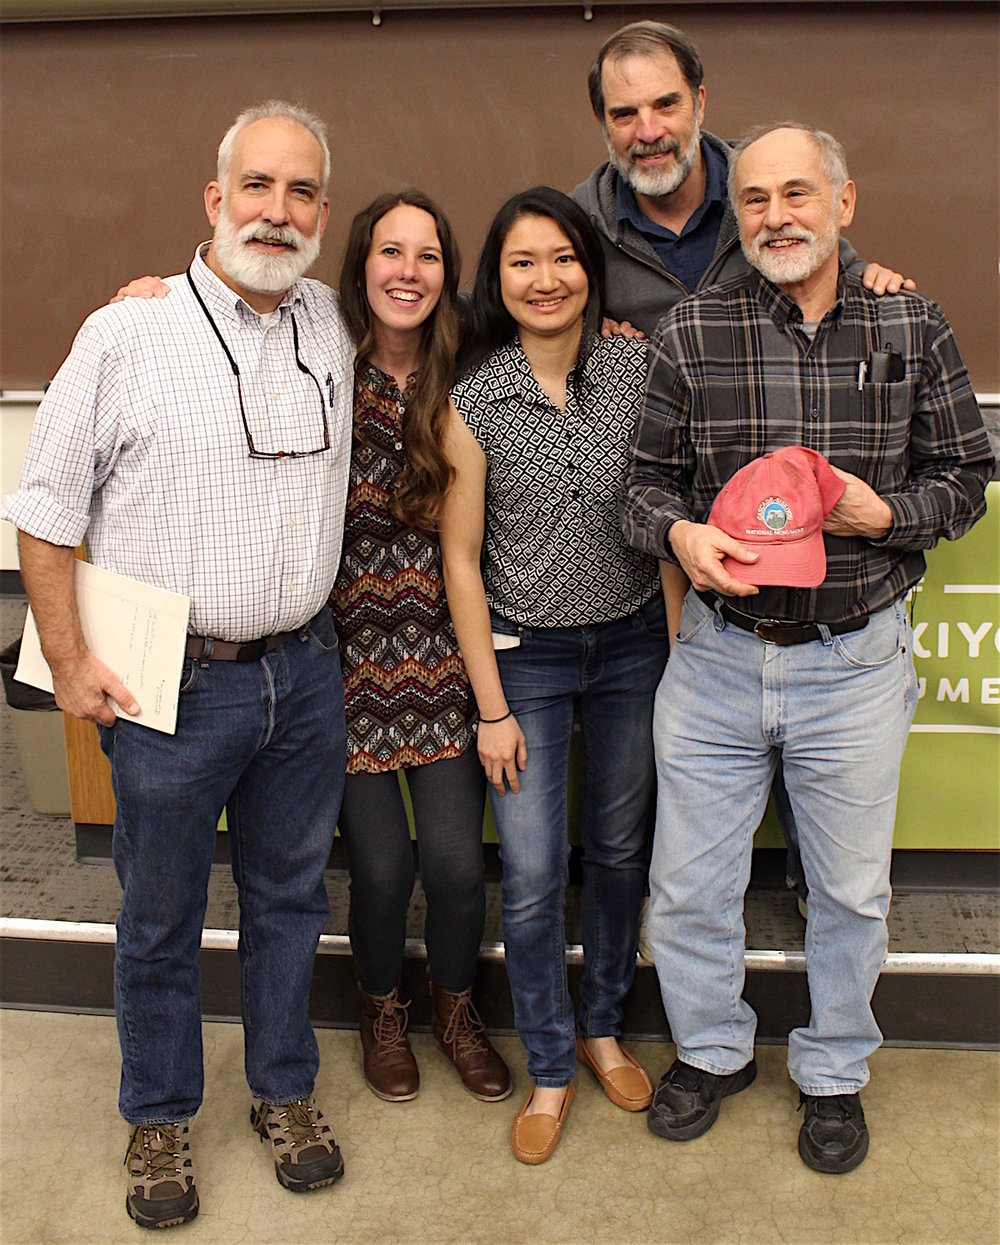 2018 Monument Research Symposium, (l-r): Dr. Michael Parker, SOU students Hope Braithwaite and Suphasiri Muttamara;KBO executive director John Alexander, and Dr. Jad D'Allura. Symposium sponsored by Friends of CSNM. Photo by Ellie Thompson